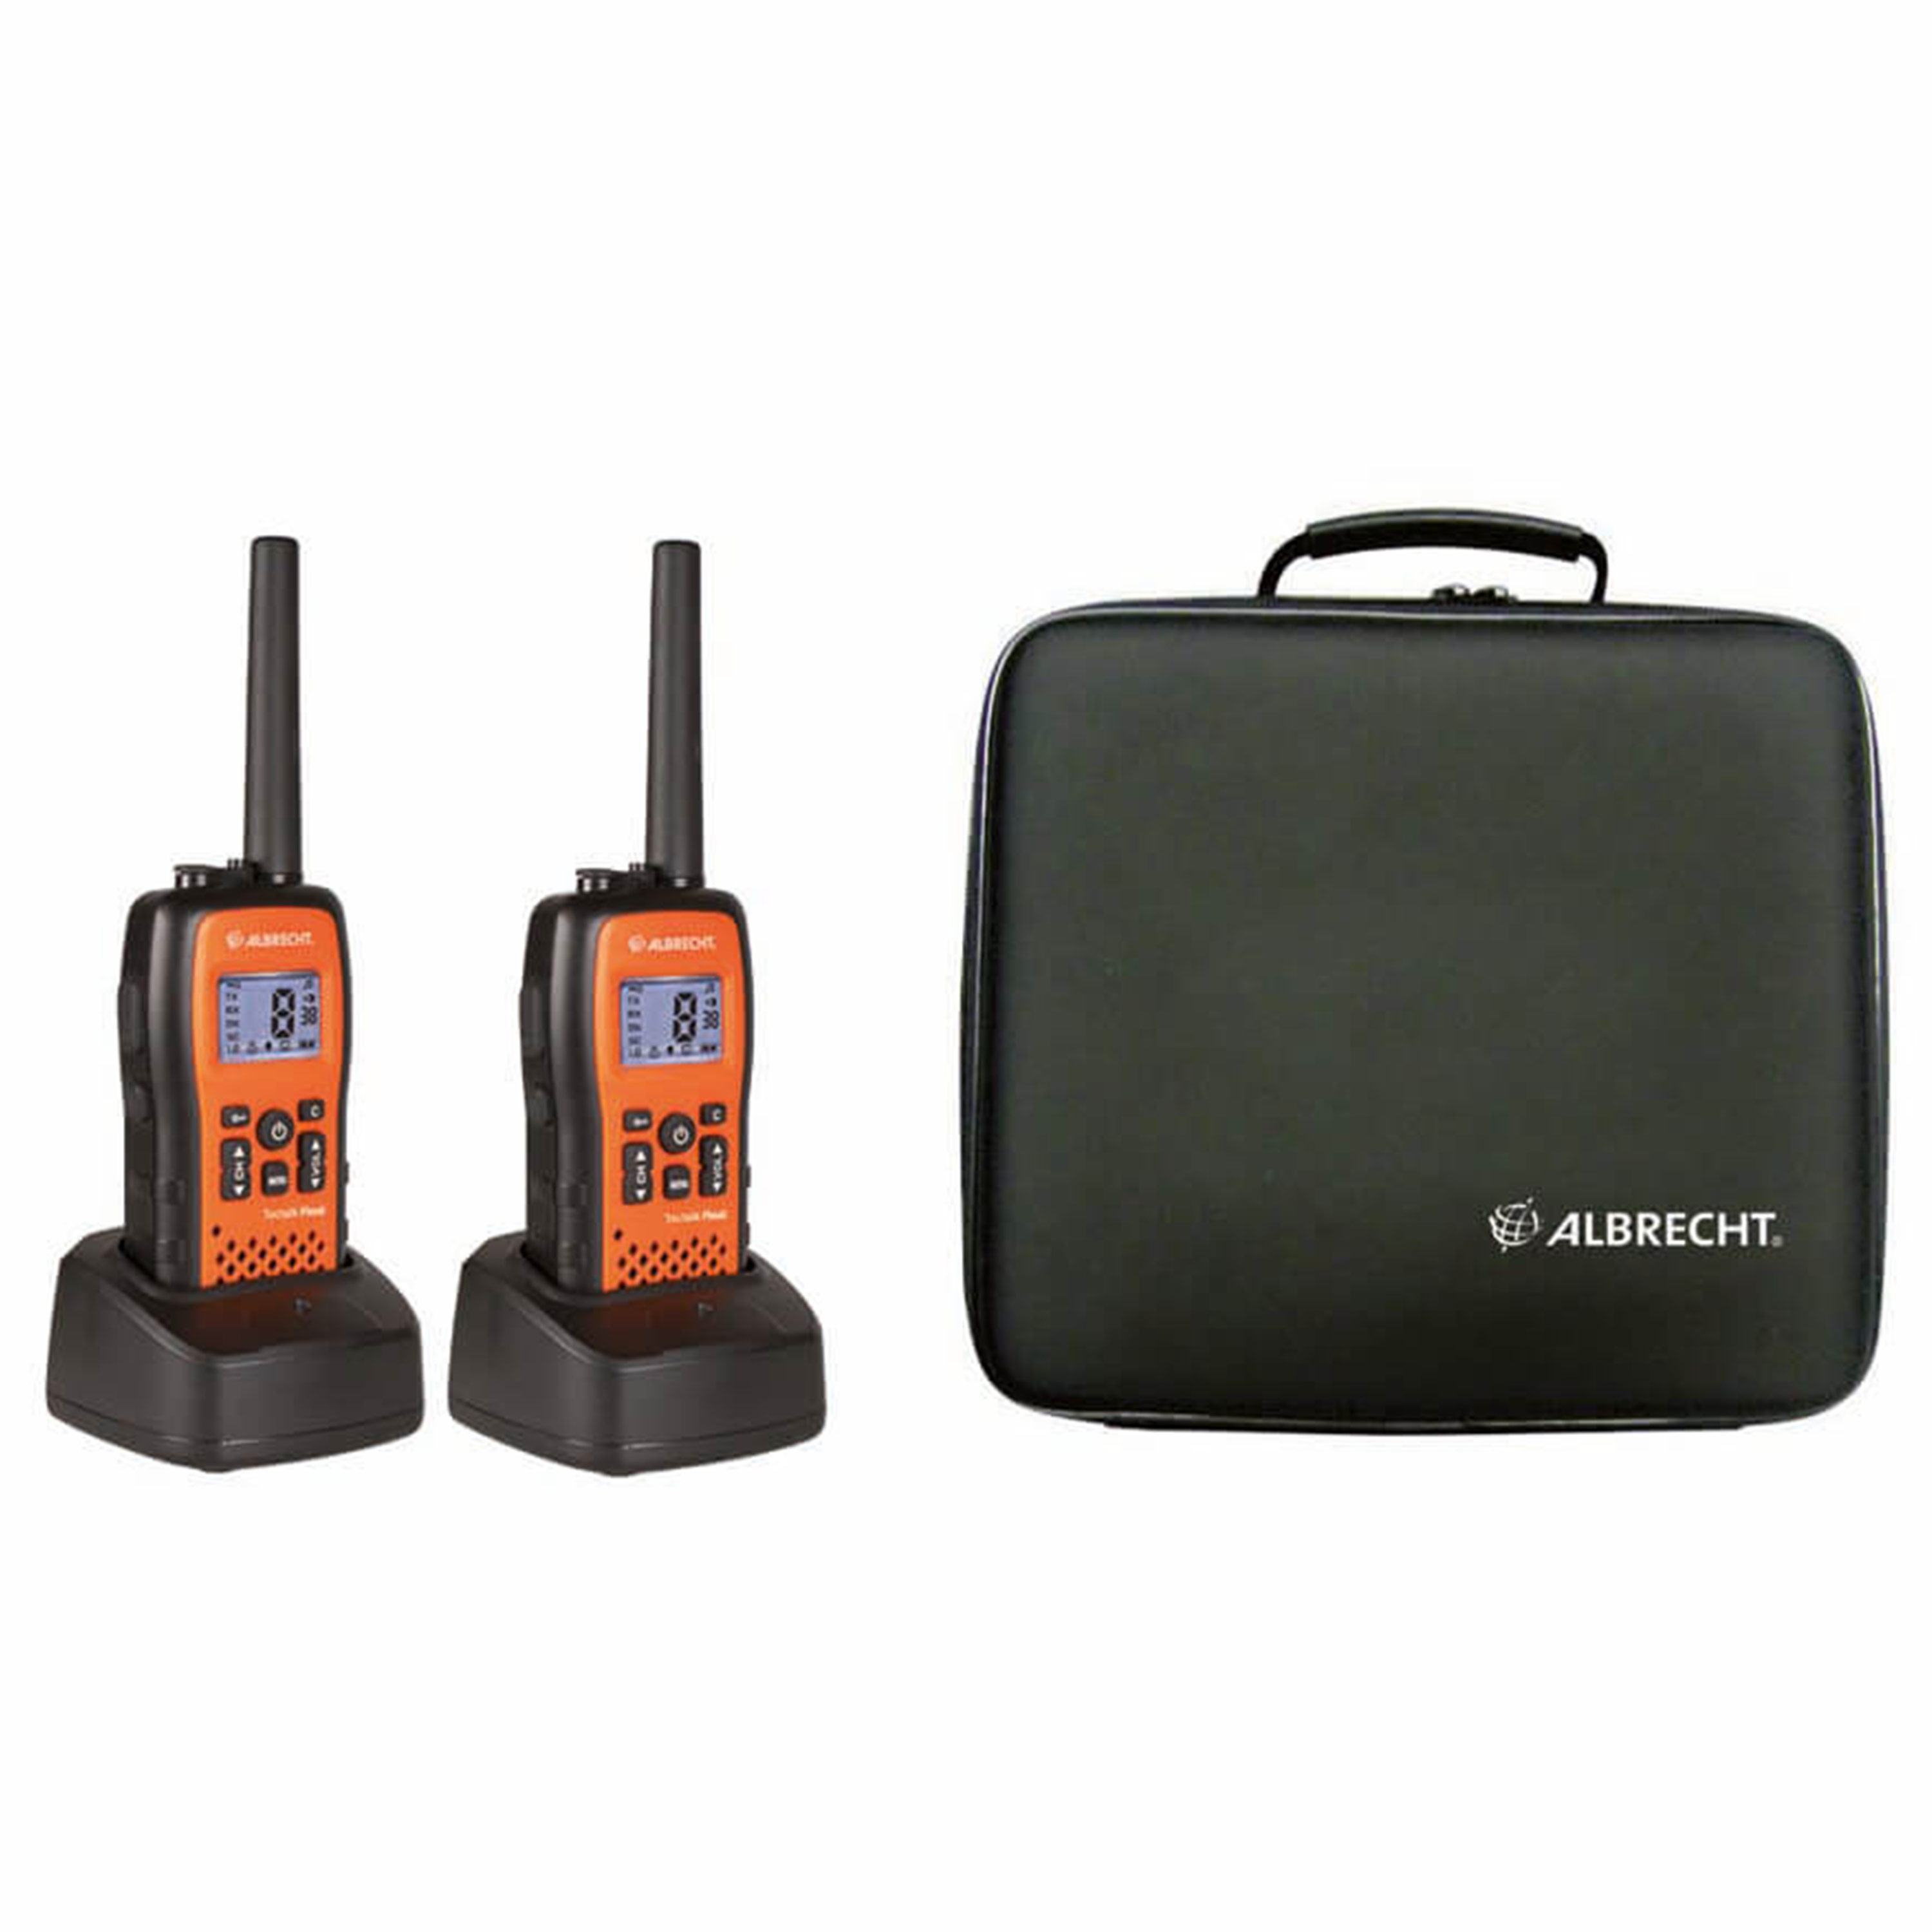 Albrecht Two-Way Radio Tectalk Float 2-Pack Case Set